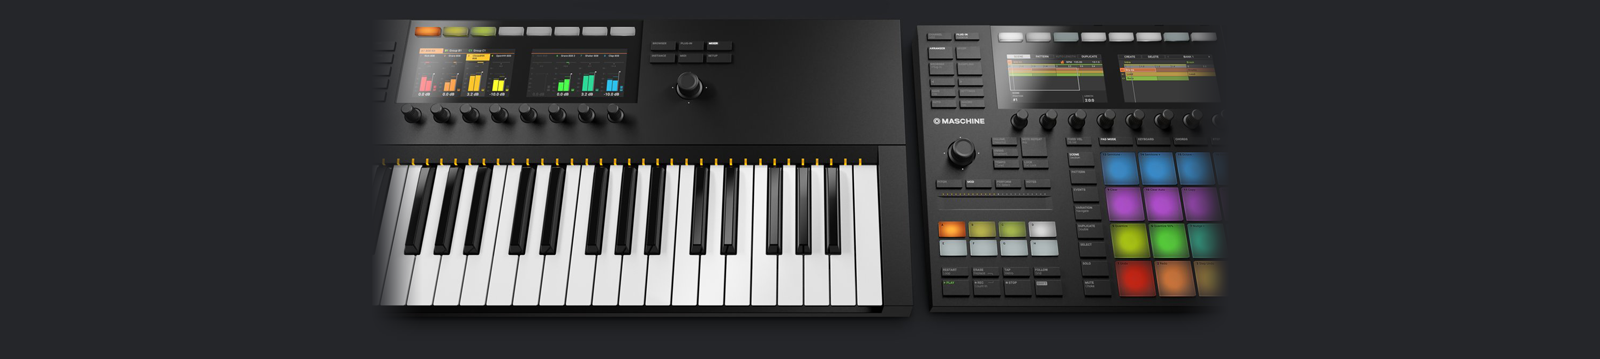 img-ce-full-maschine_overview_15_komplete_kontrol_s_series_02-f029b93e99b332aeead91a18edce3a7d-d